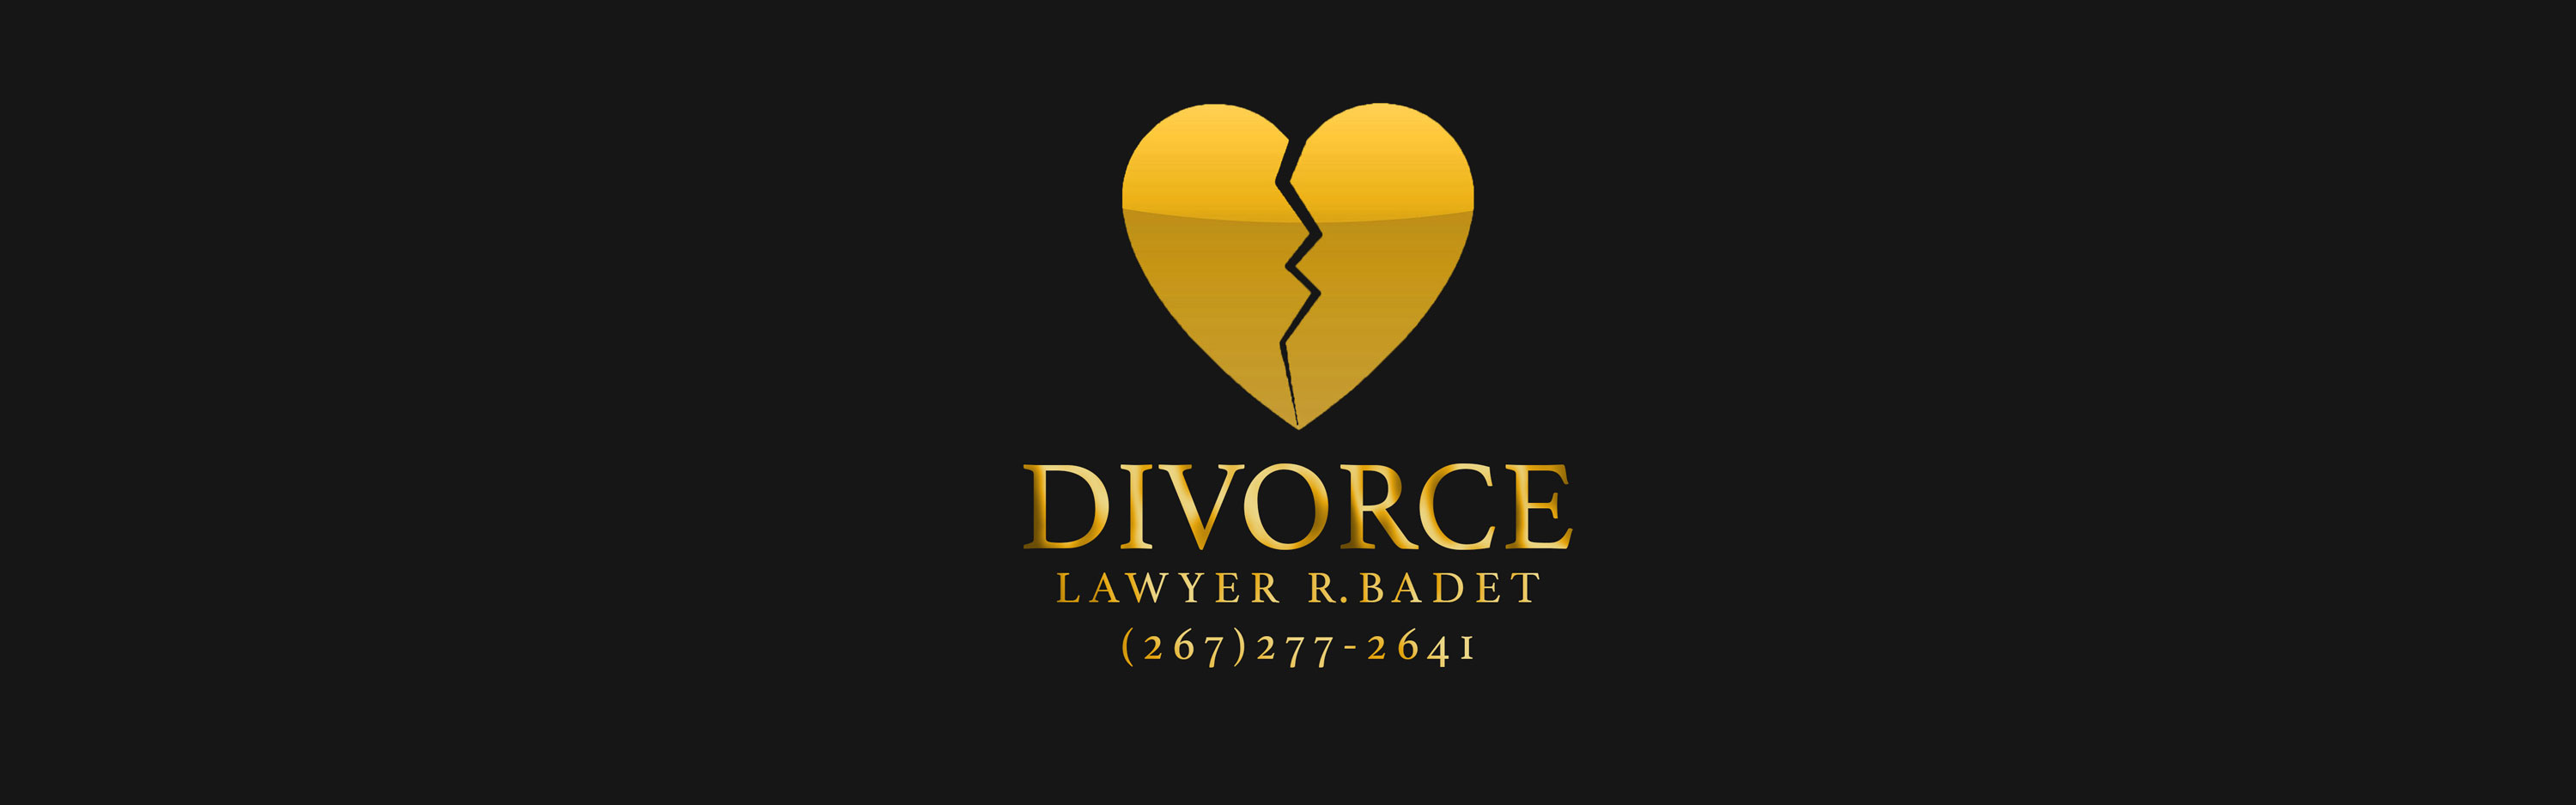 Lawyers for Divorces (Philadelphia, PA) 267-277-2641